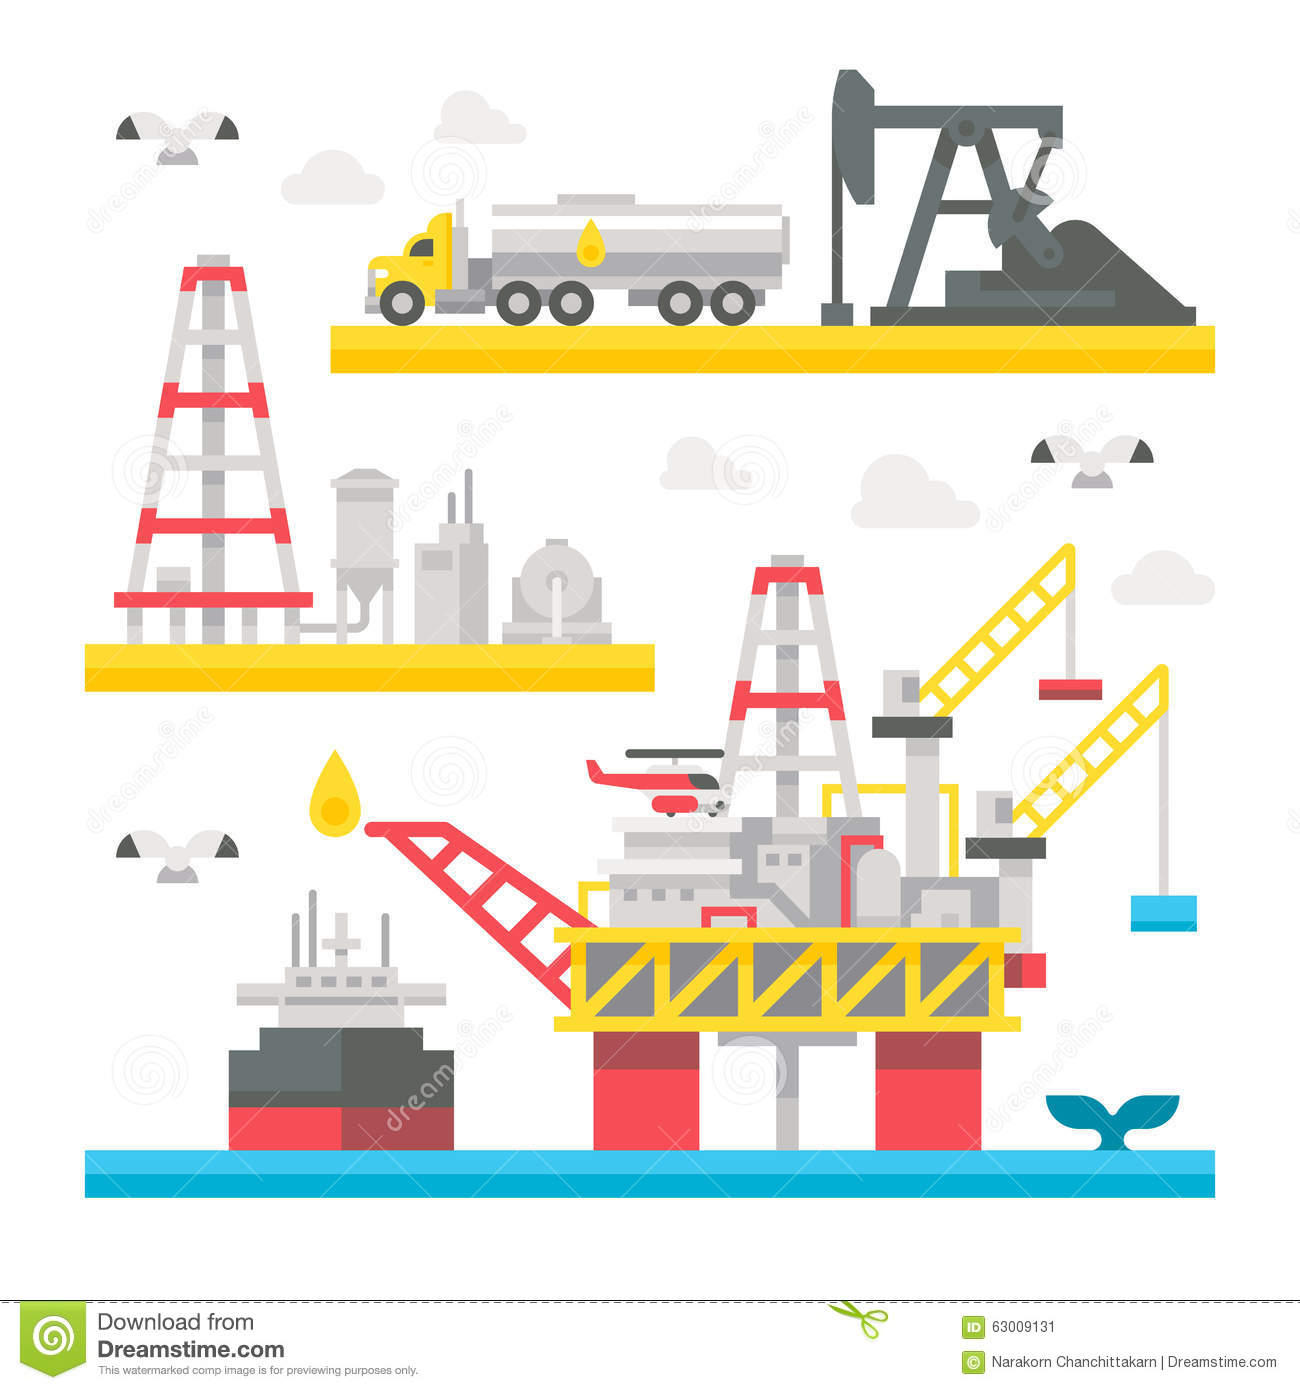 Twing furthermore Solution besides 2010 besides Cimc Raffles Delivers Cosl Prospector likewise 5026694. on jack up rig diagram